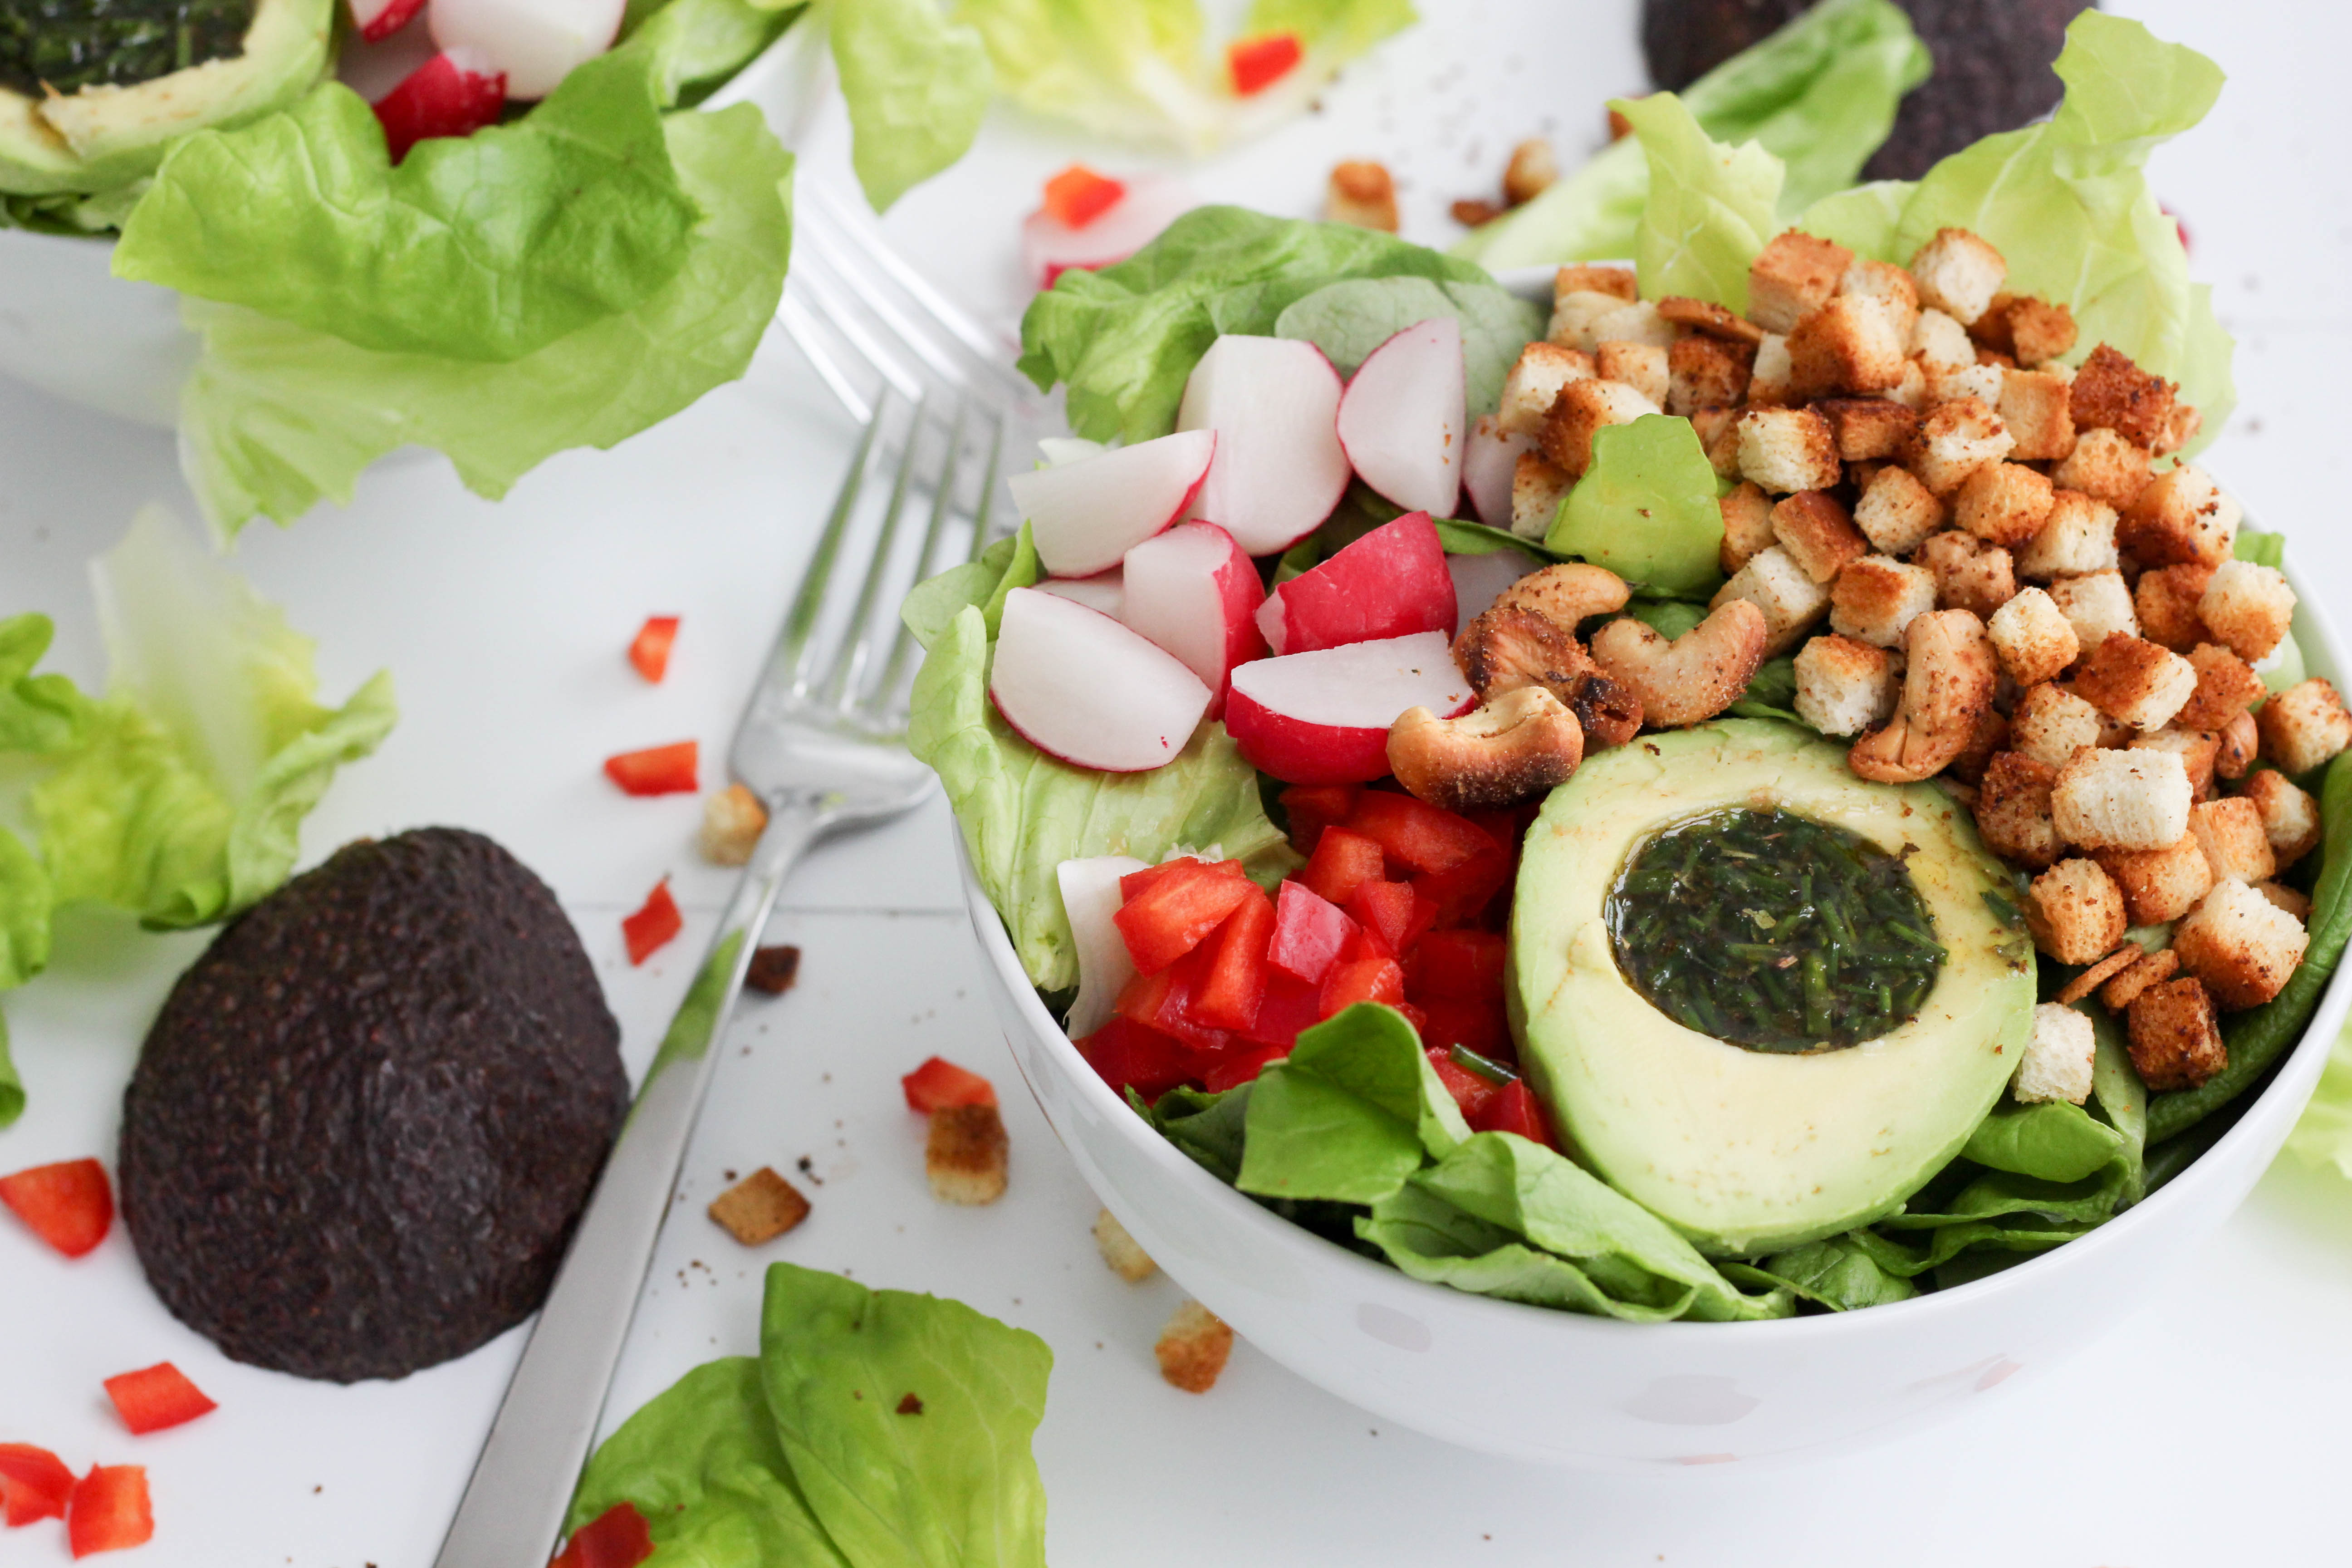 Vegan - Avocado - Salat - Healthy -Plantbased - Fast Food - Bowl